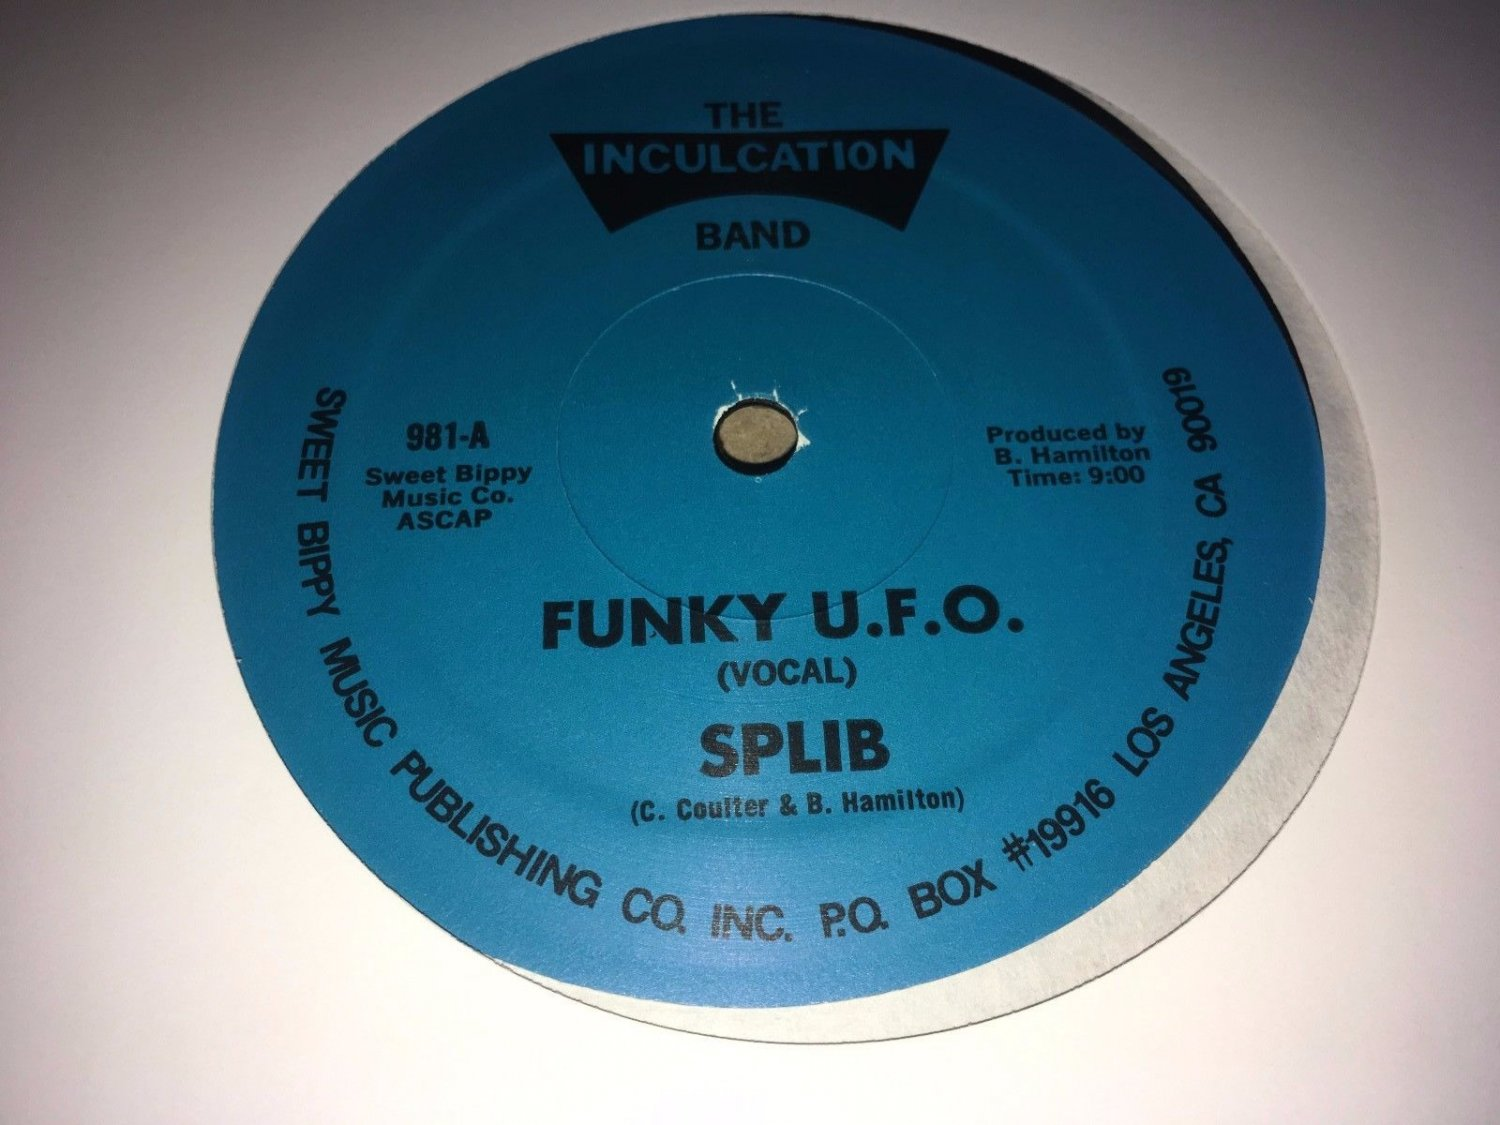 "Splib & The Inculcation Band - Funky U.F.O. 12"" Single 1981 Inculcation Records"